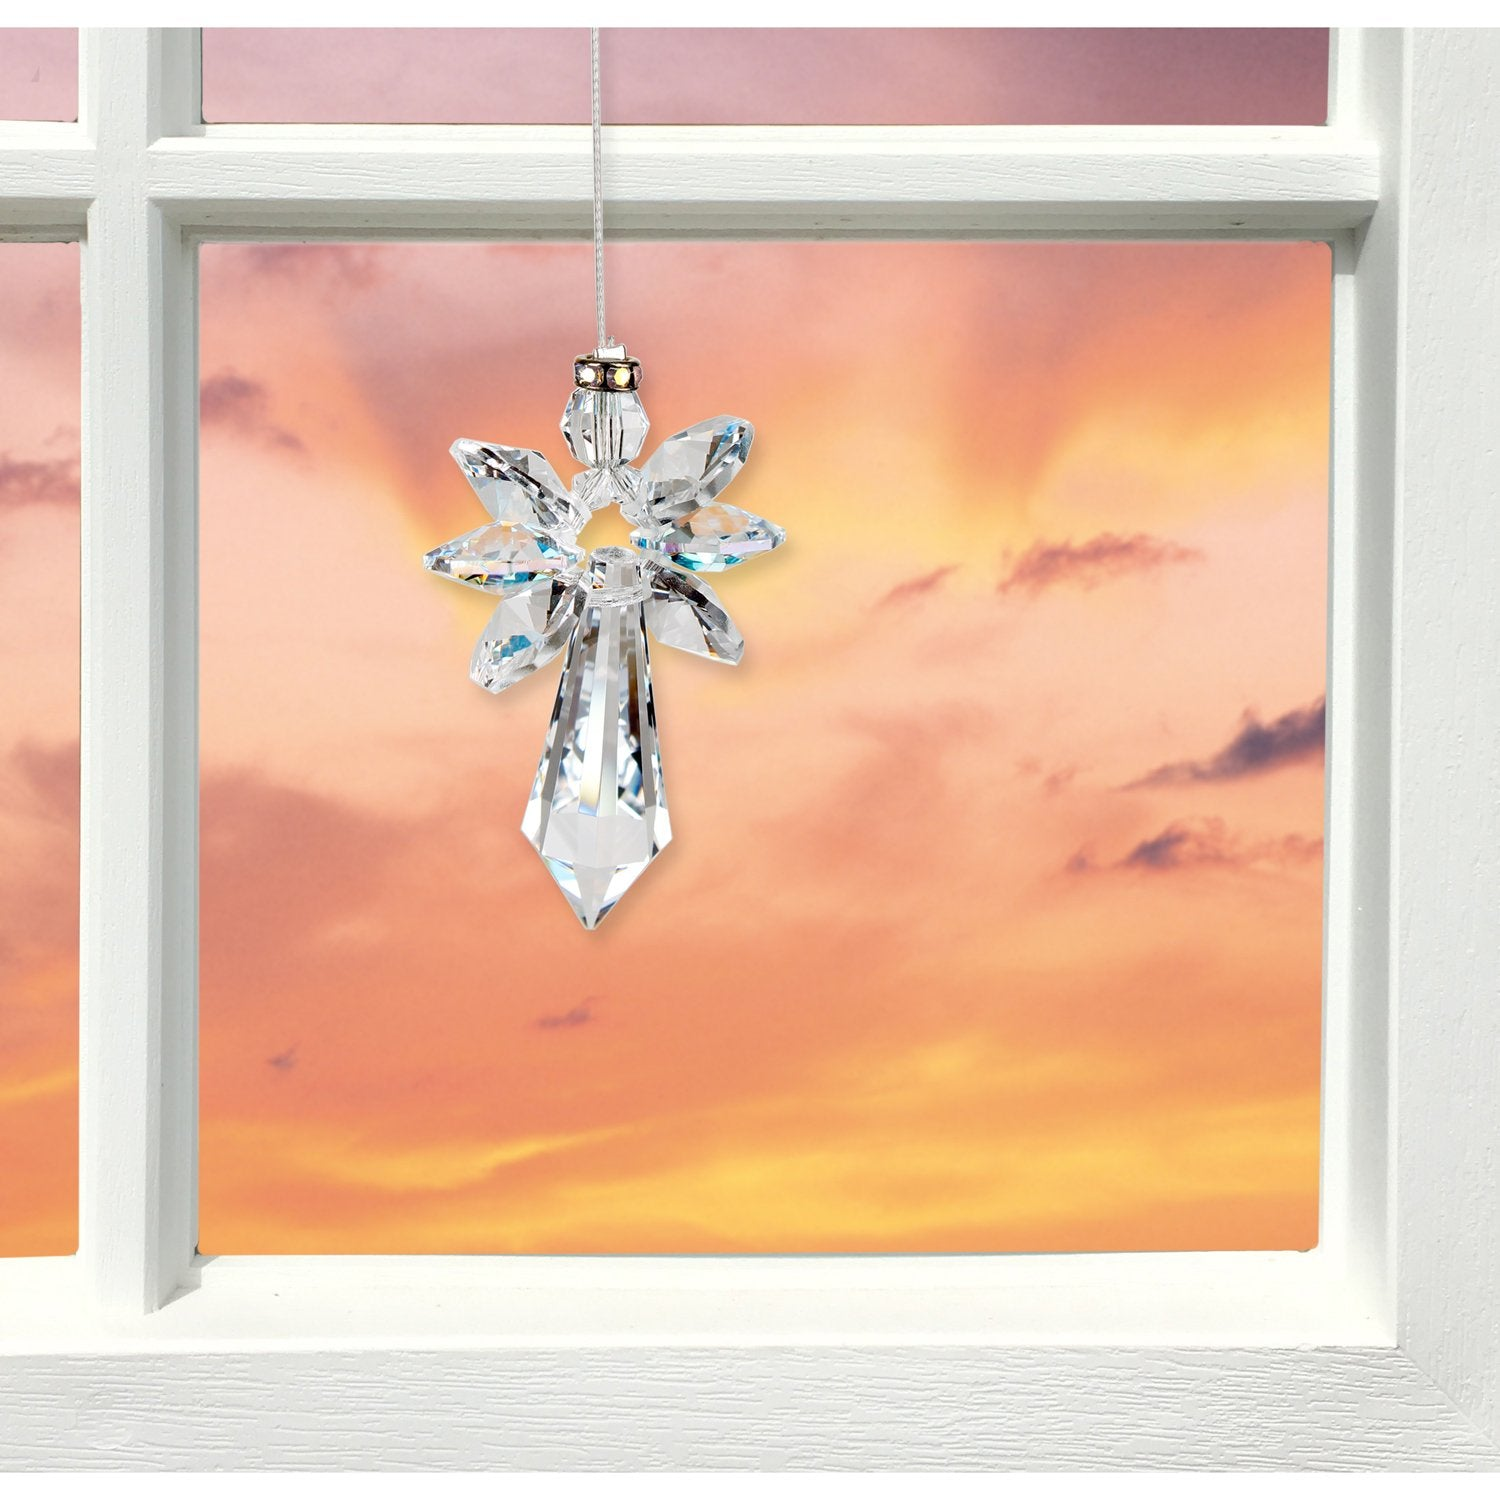 Crystal Guardian Angel Suncatcher - Large, Aurora Borealis lifestyle image